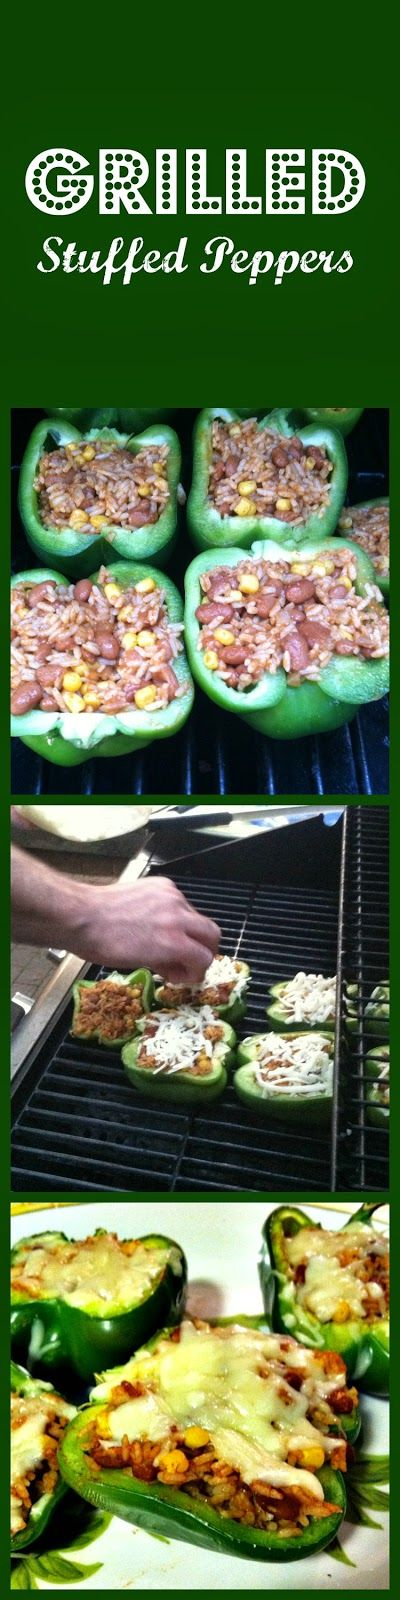 twingle mommmy: Grilled Stuffed Peppers